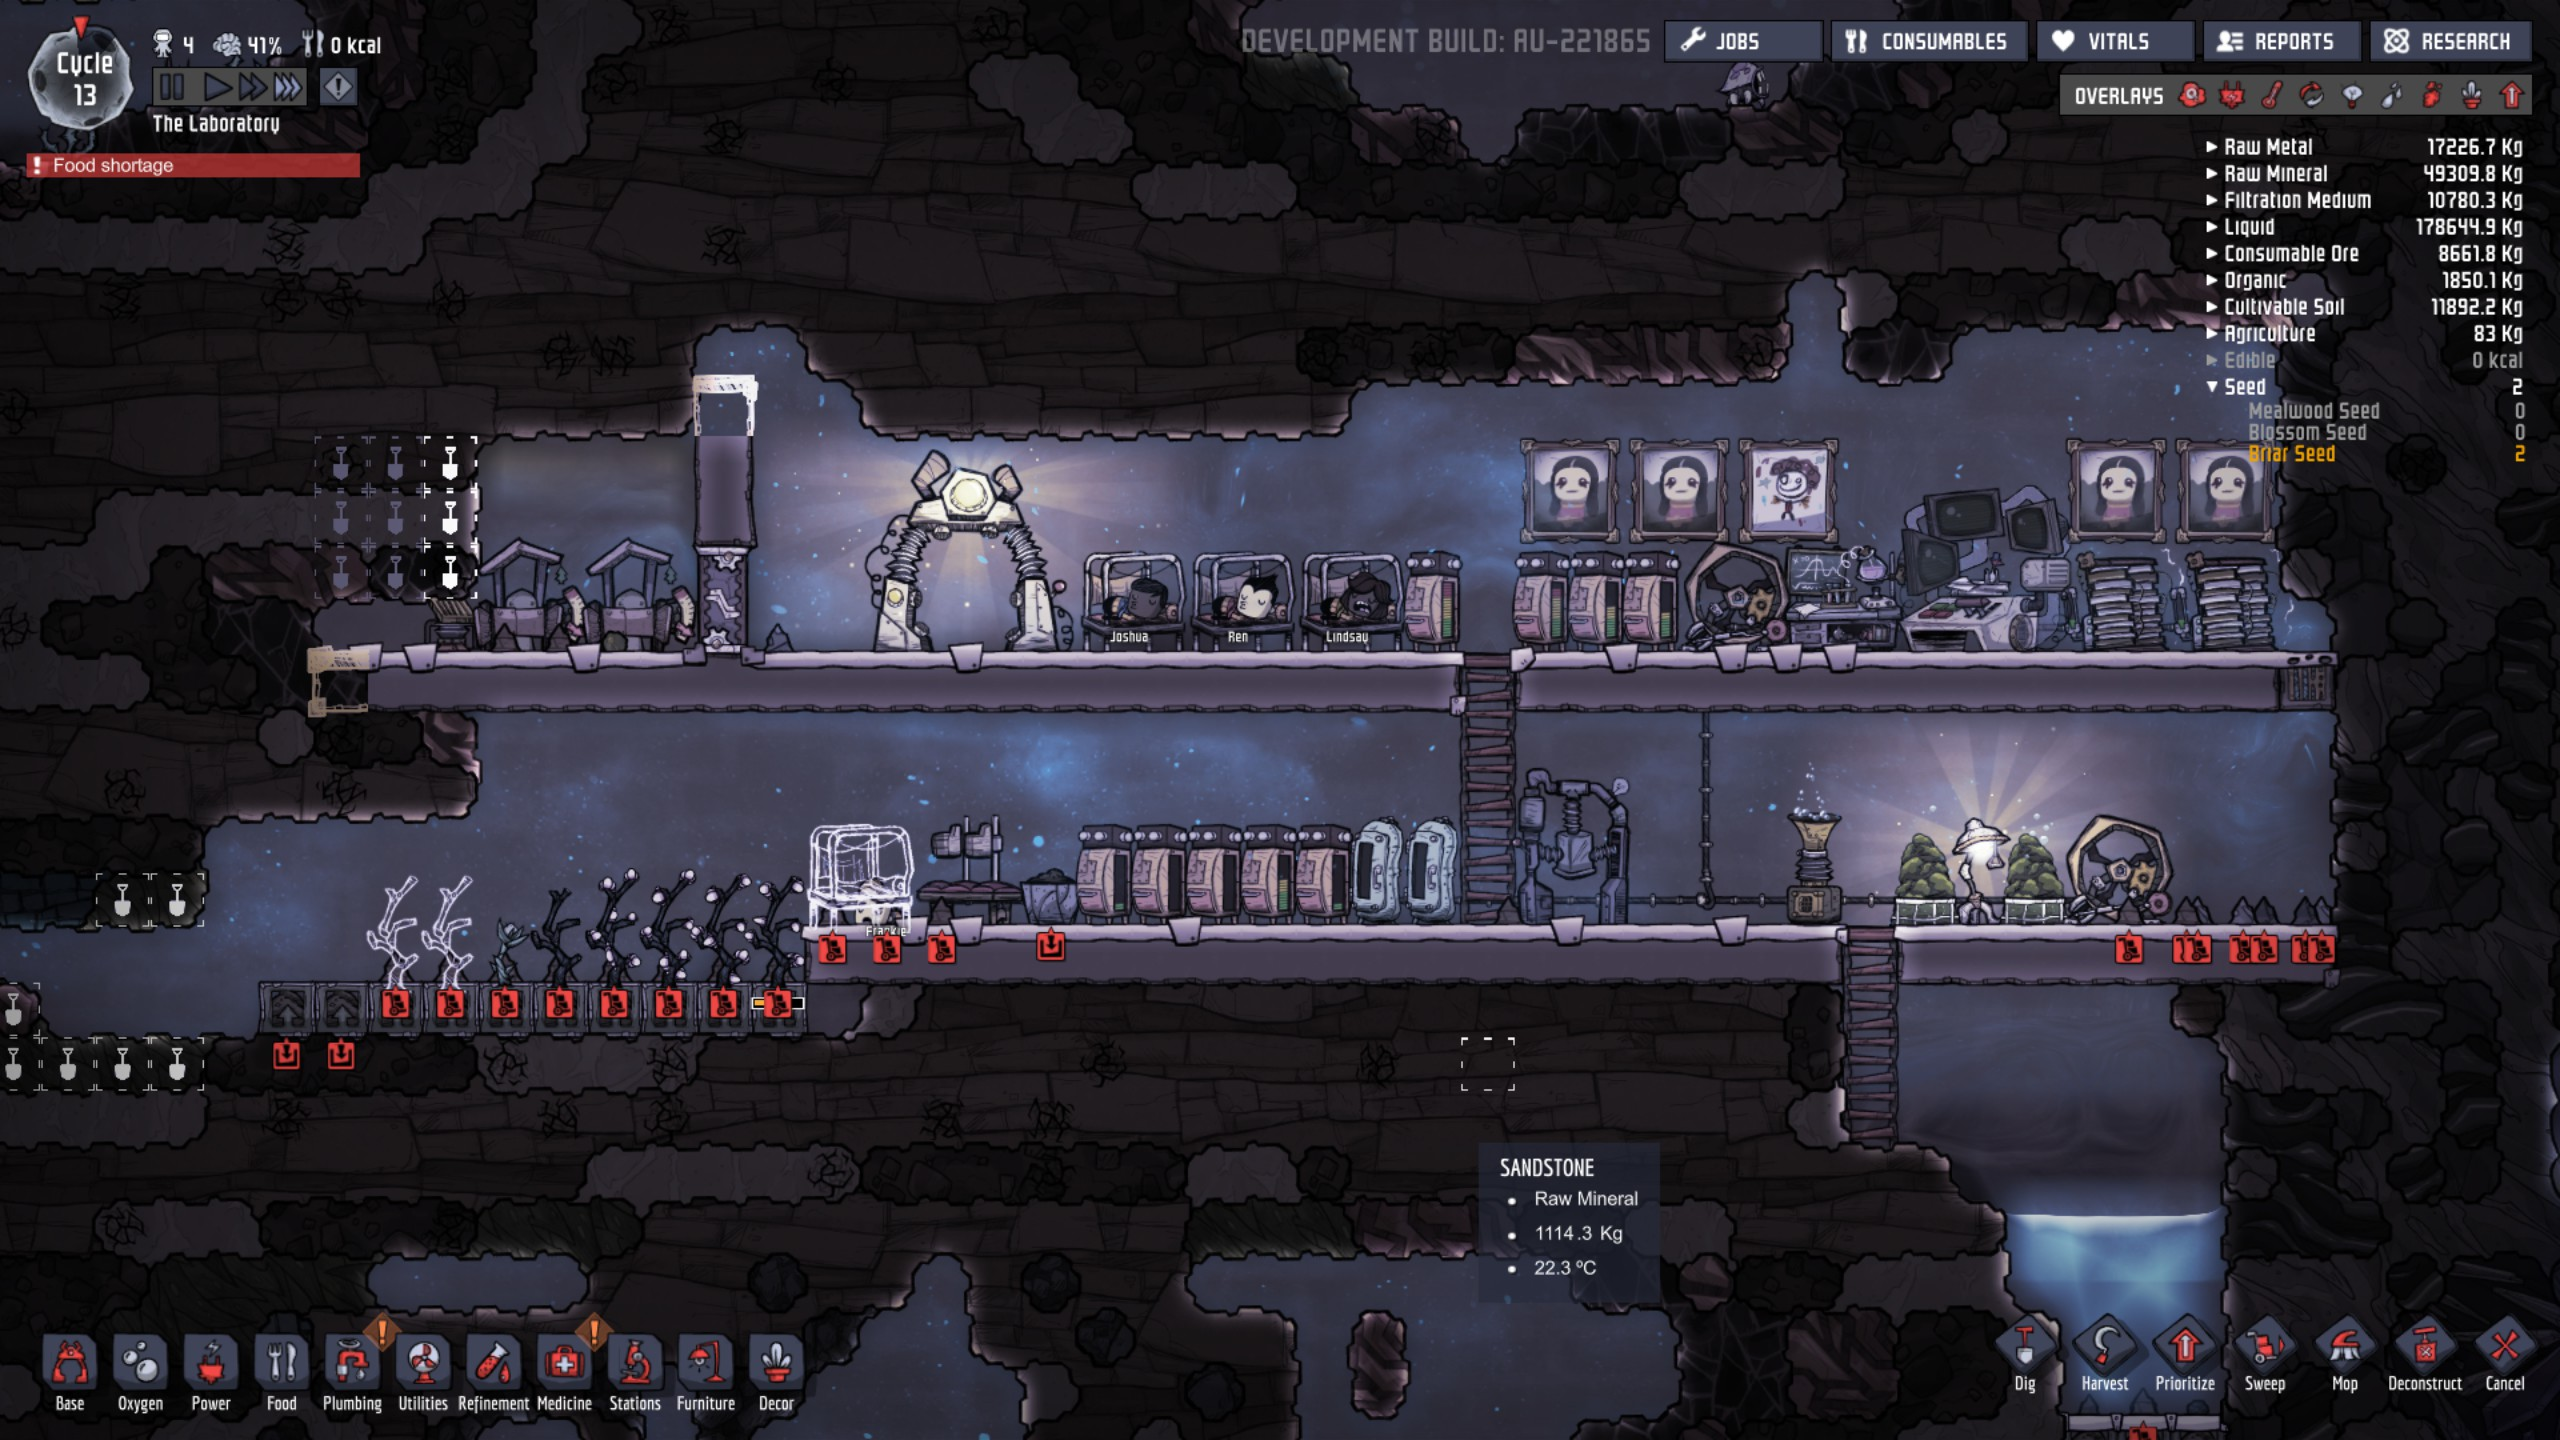 REVIEW: Oxygen Not Included - oprainfall